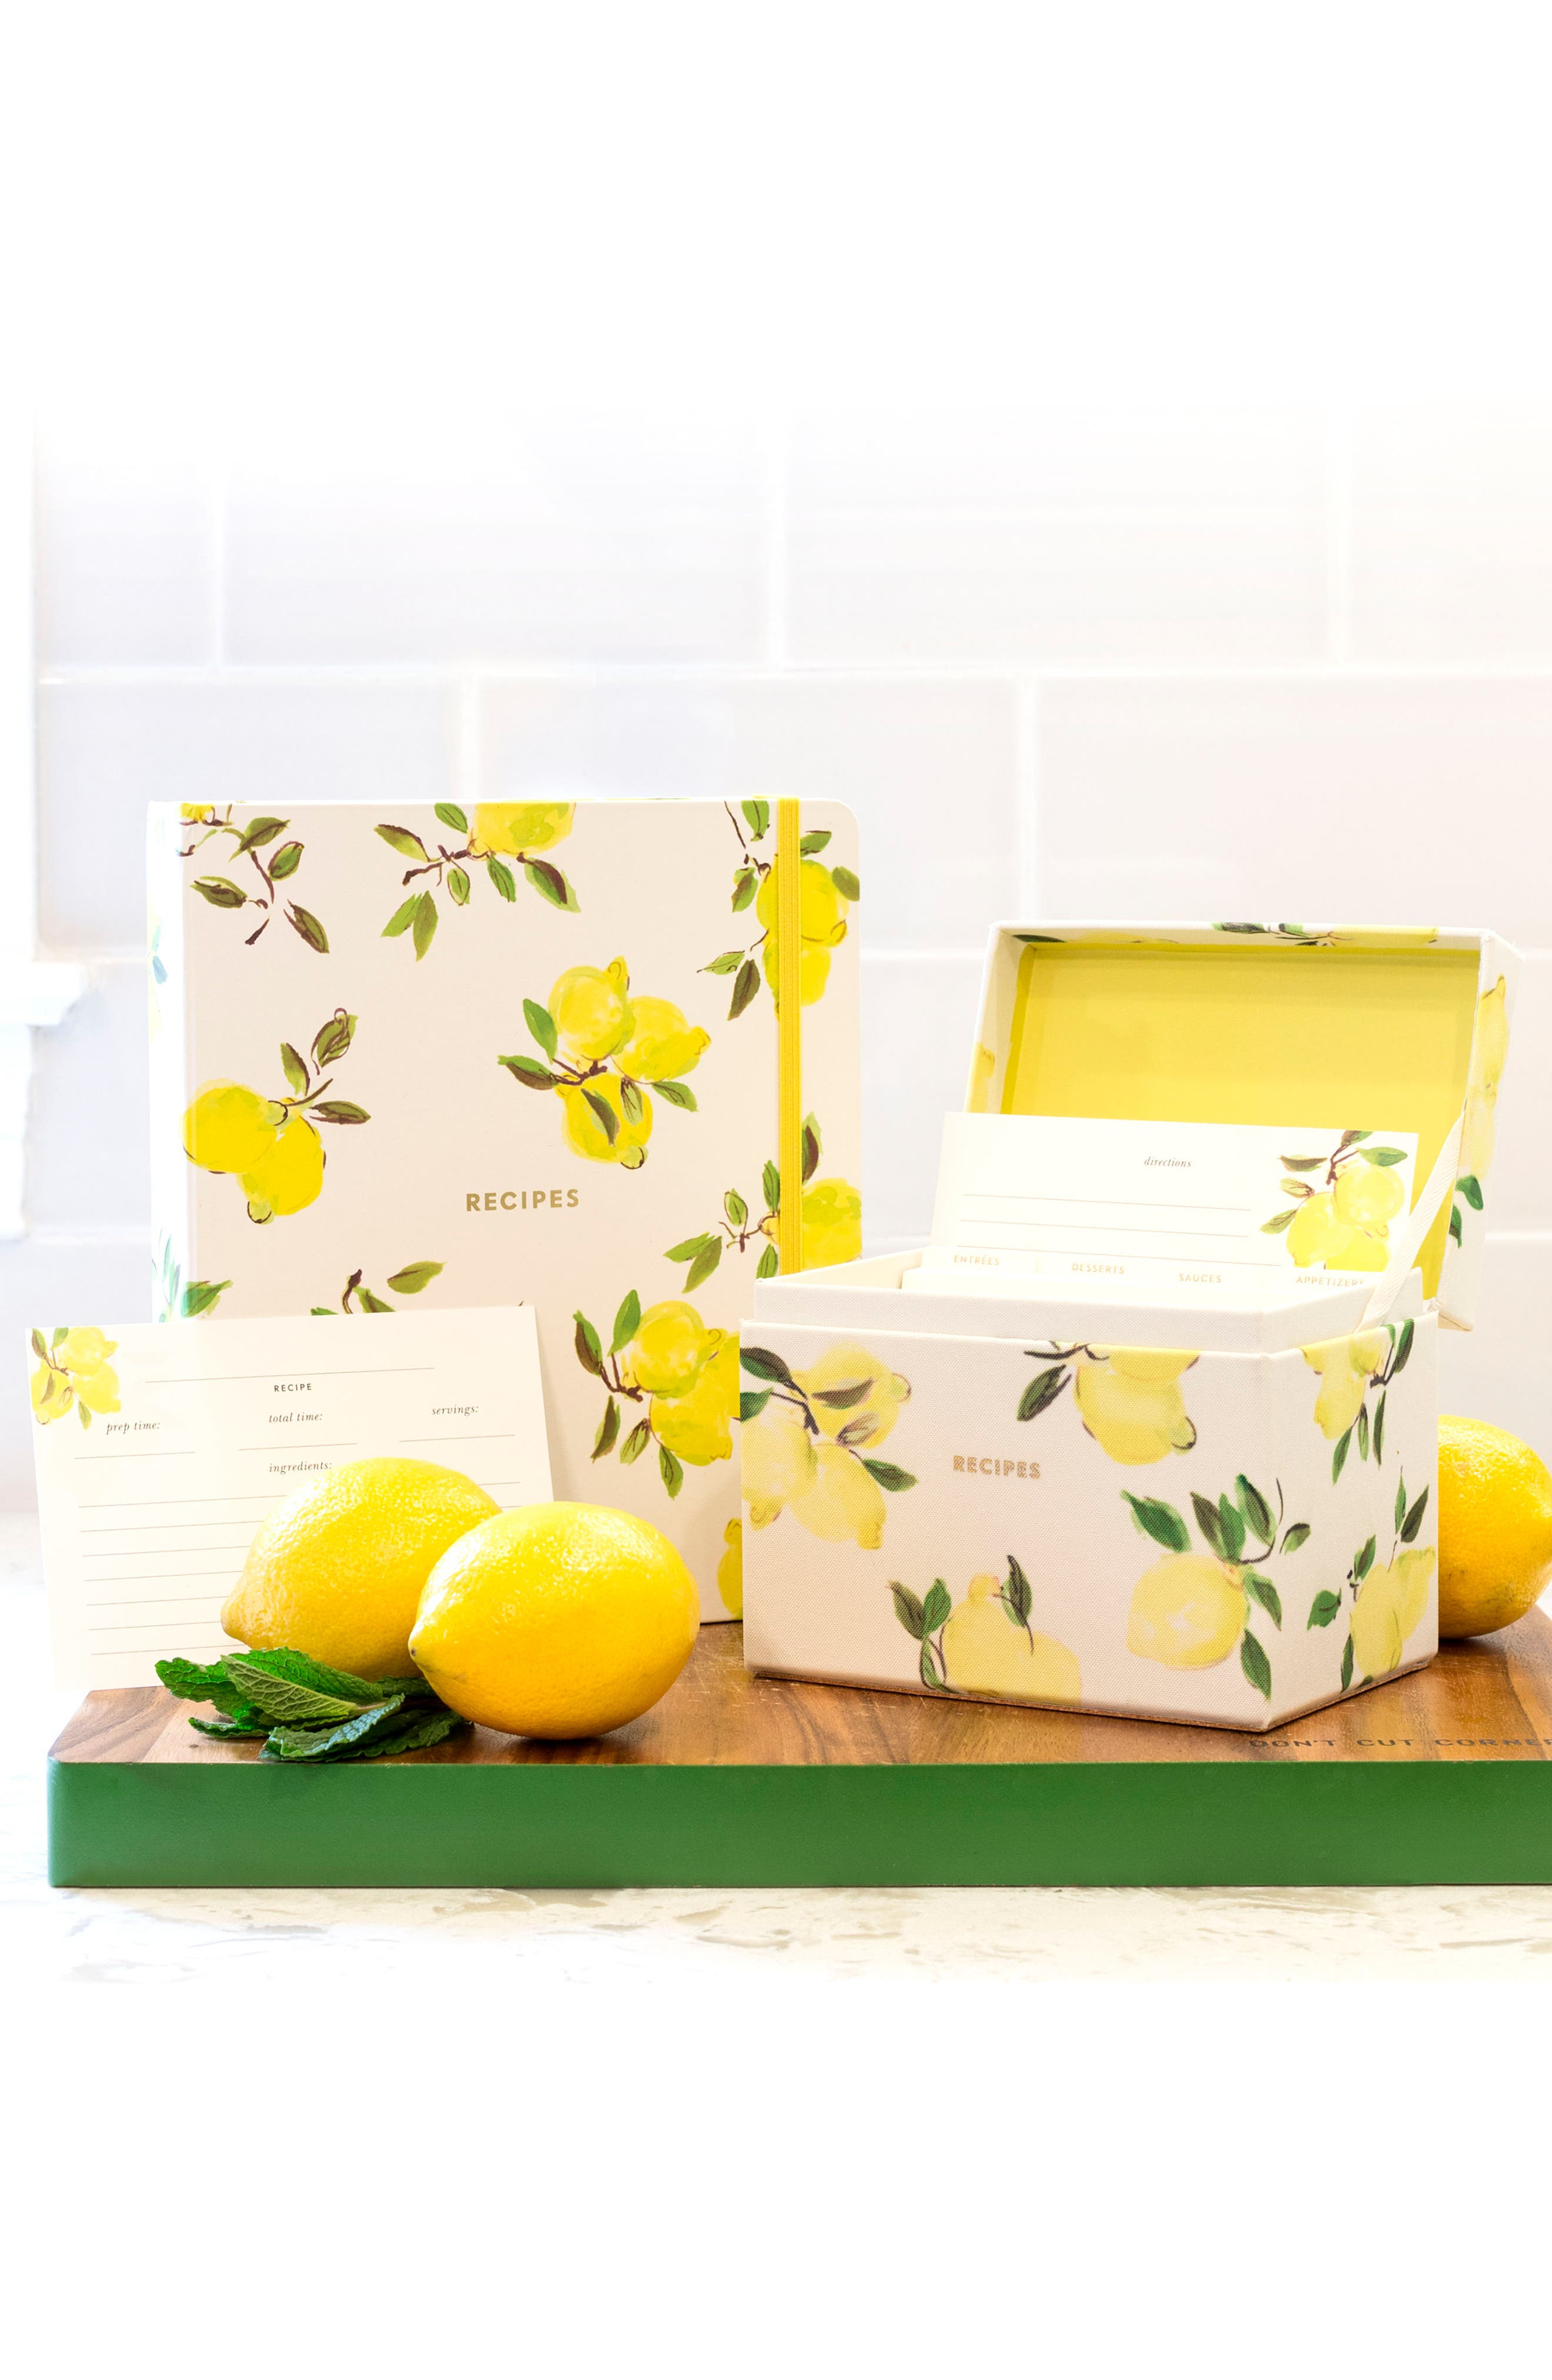 lemon recipe box & cards set,                             Alternate thumbnail 2, color,                             730